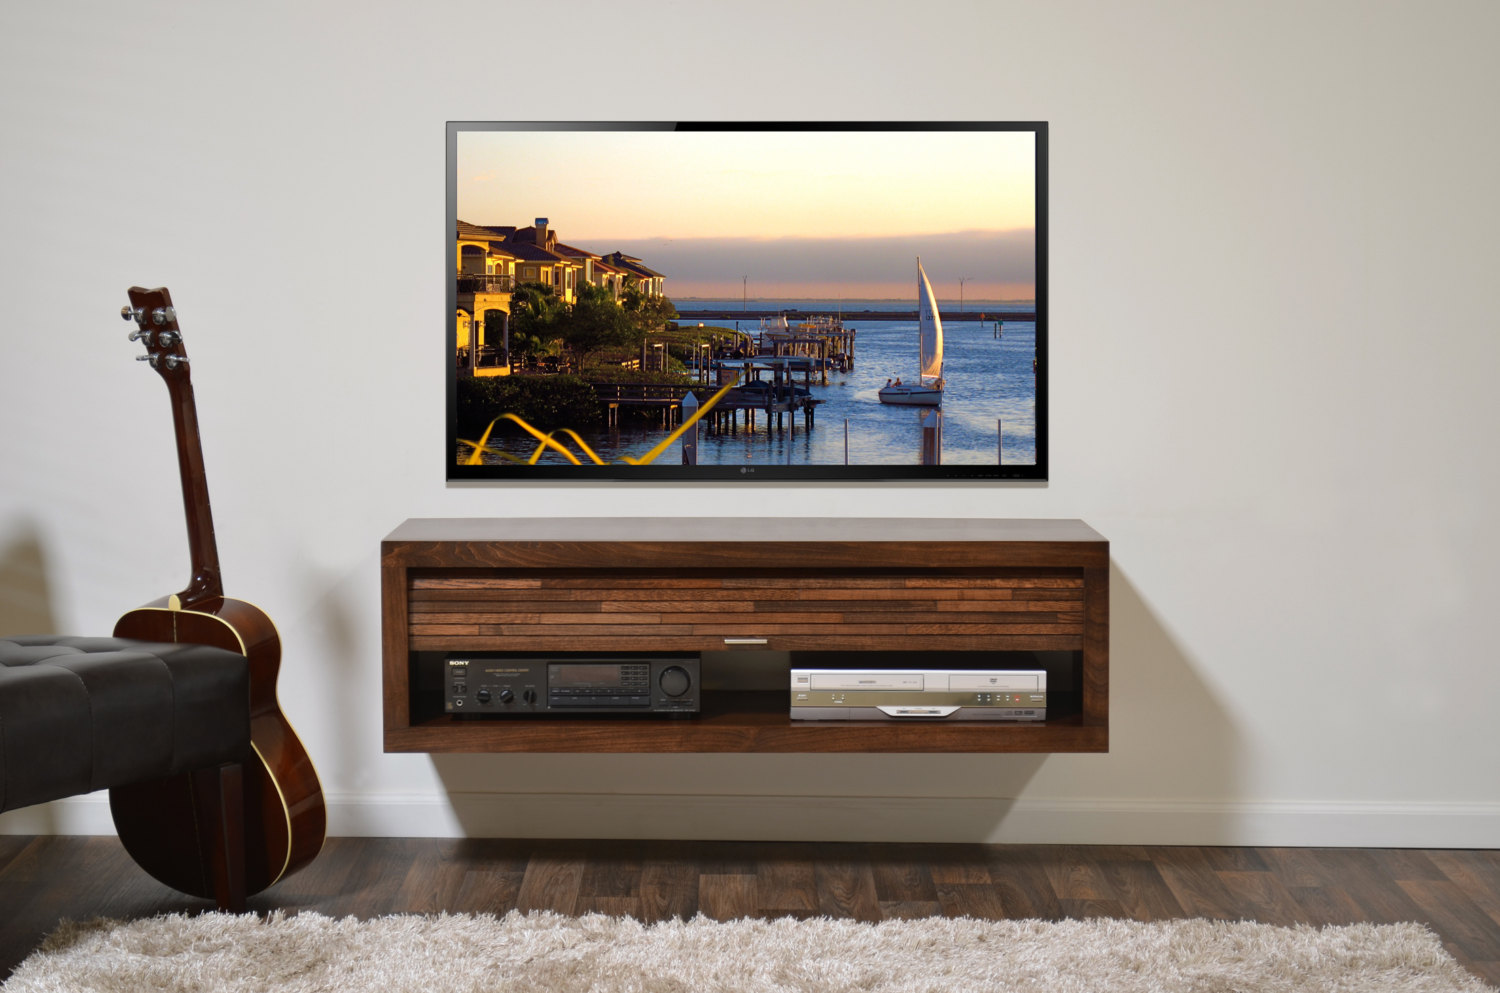 hardwood floating stand design varnished finish come with large led television wall mounted together white paint well wooden flooring glass media shelves steel shelving system bar